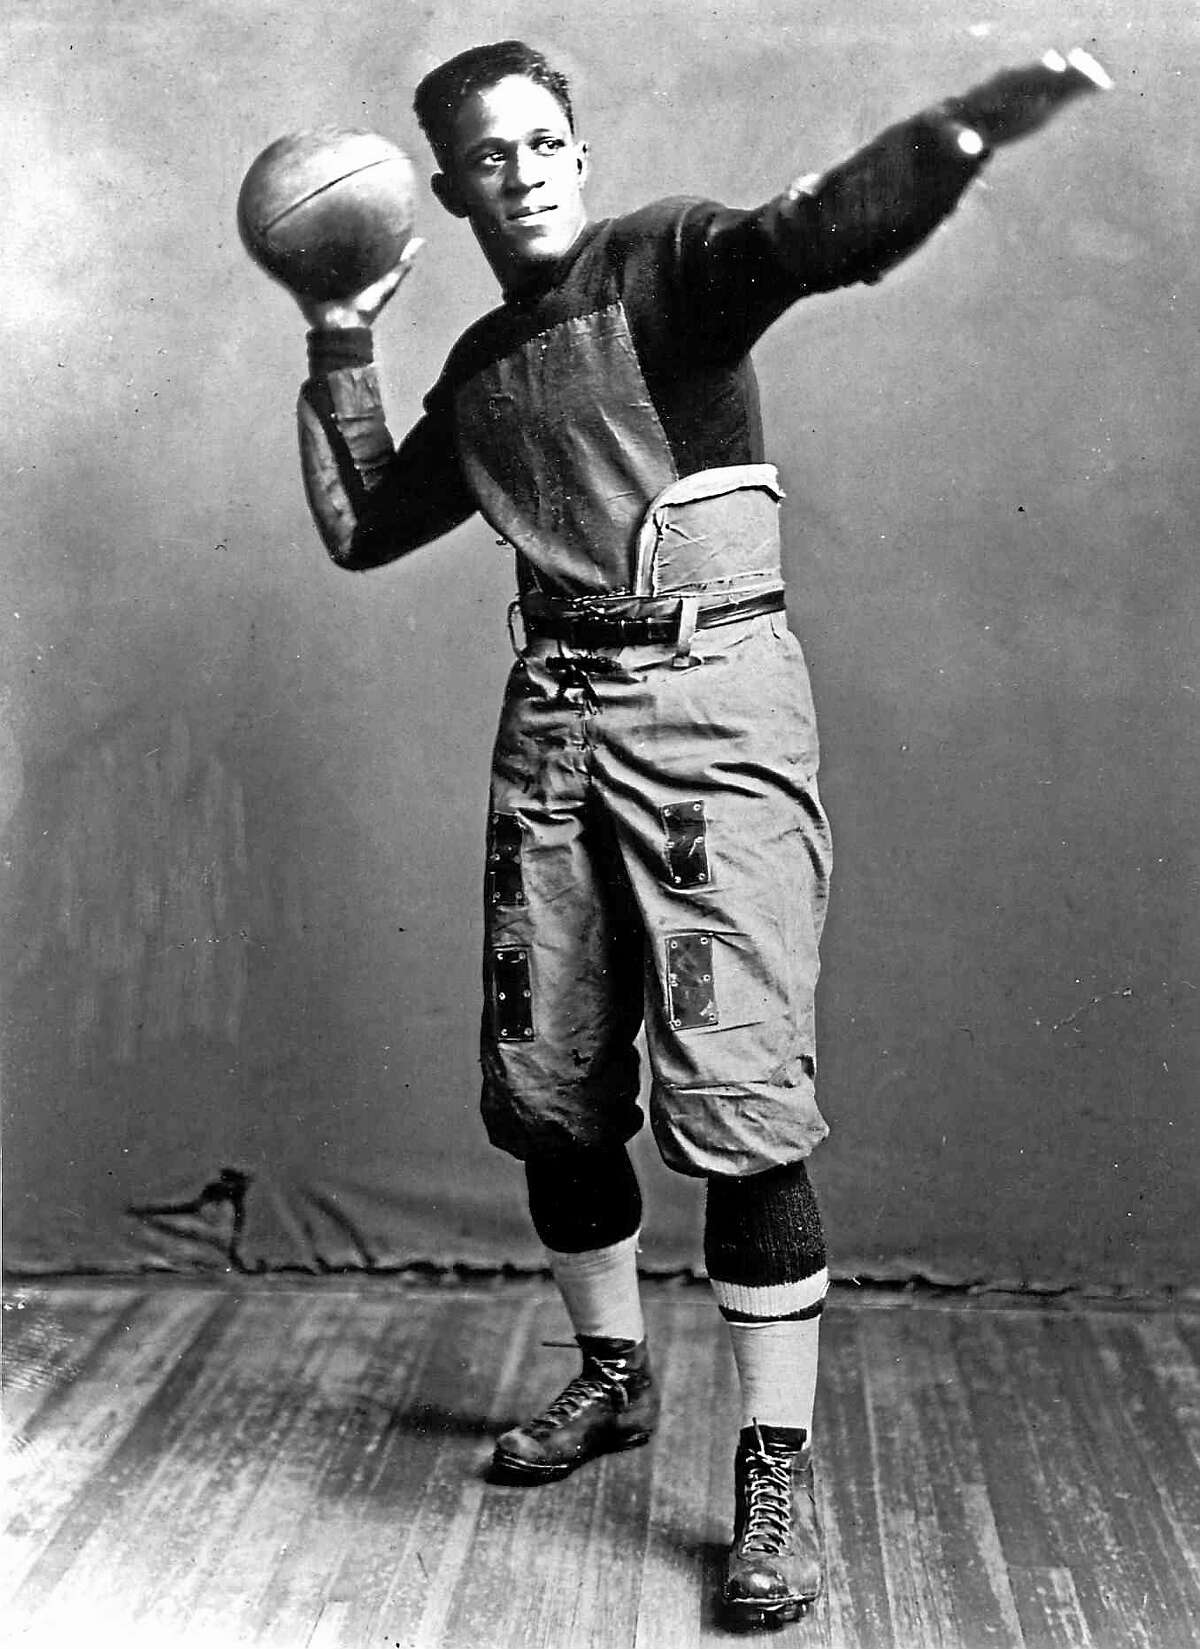 Brown's Fritz Pollard was the first black player to play in the Yale Bowl in 1915.